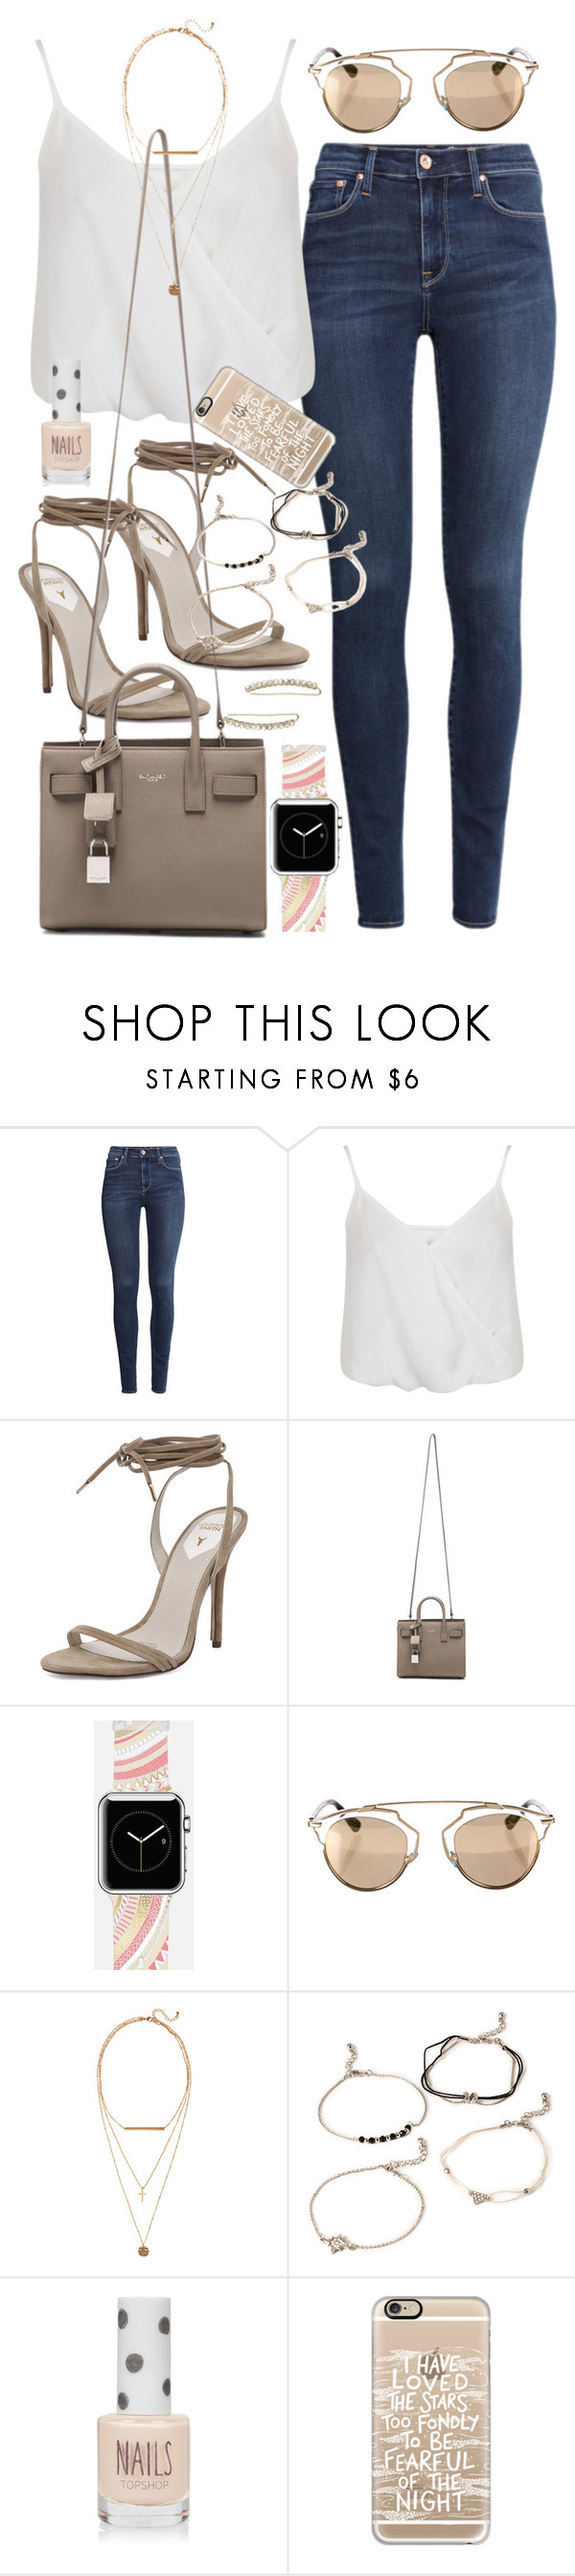 """""""Outfit with a Casetify Apple Watch Band and phone case"""" by ferned ❤ liked on Polyvore featuring H&M, Miss Selfridge, Windsor Smith, Yves Saint Laurent, Casetify, Christian Dior, Forever 21, Topshop, women's clothing and women's fashion"""